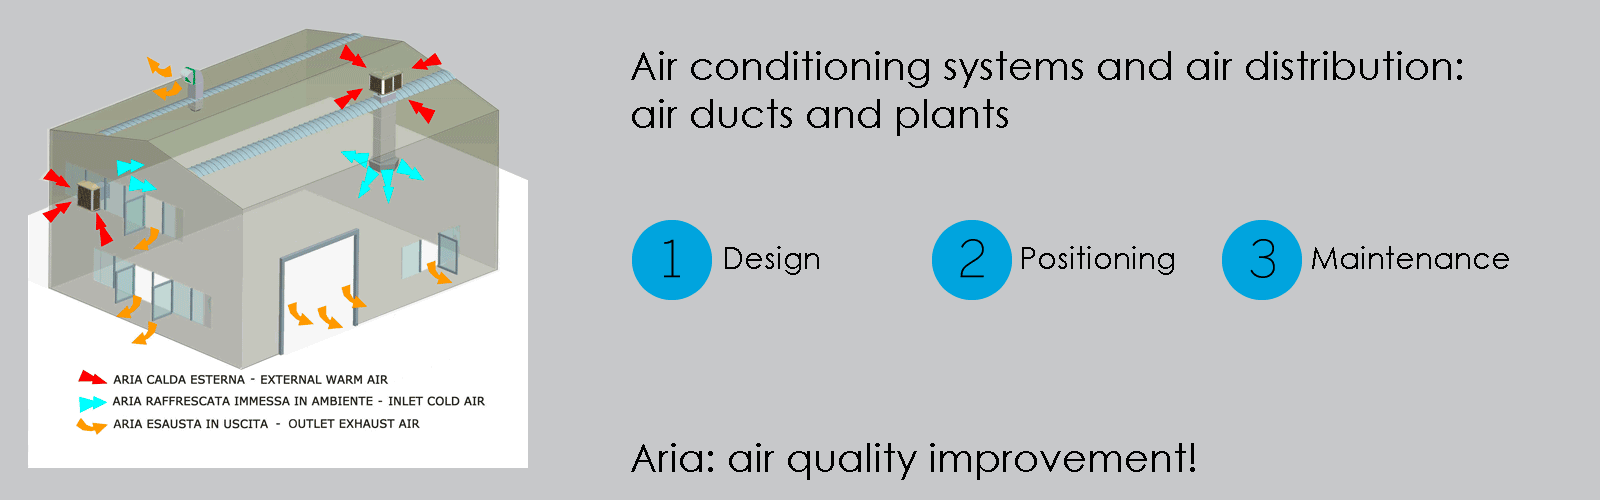 Air conditioning systems and air distribution